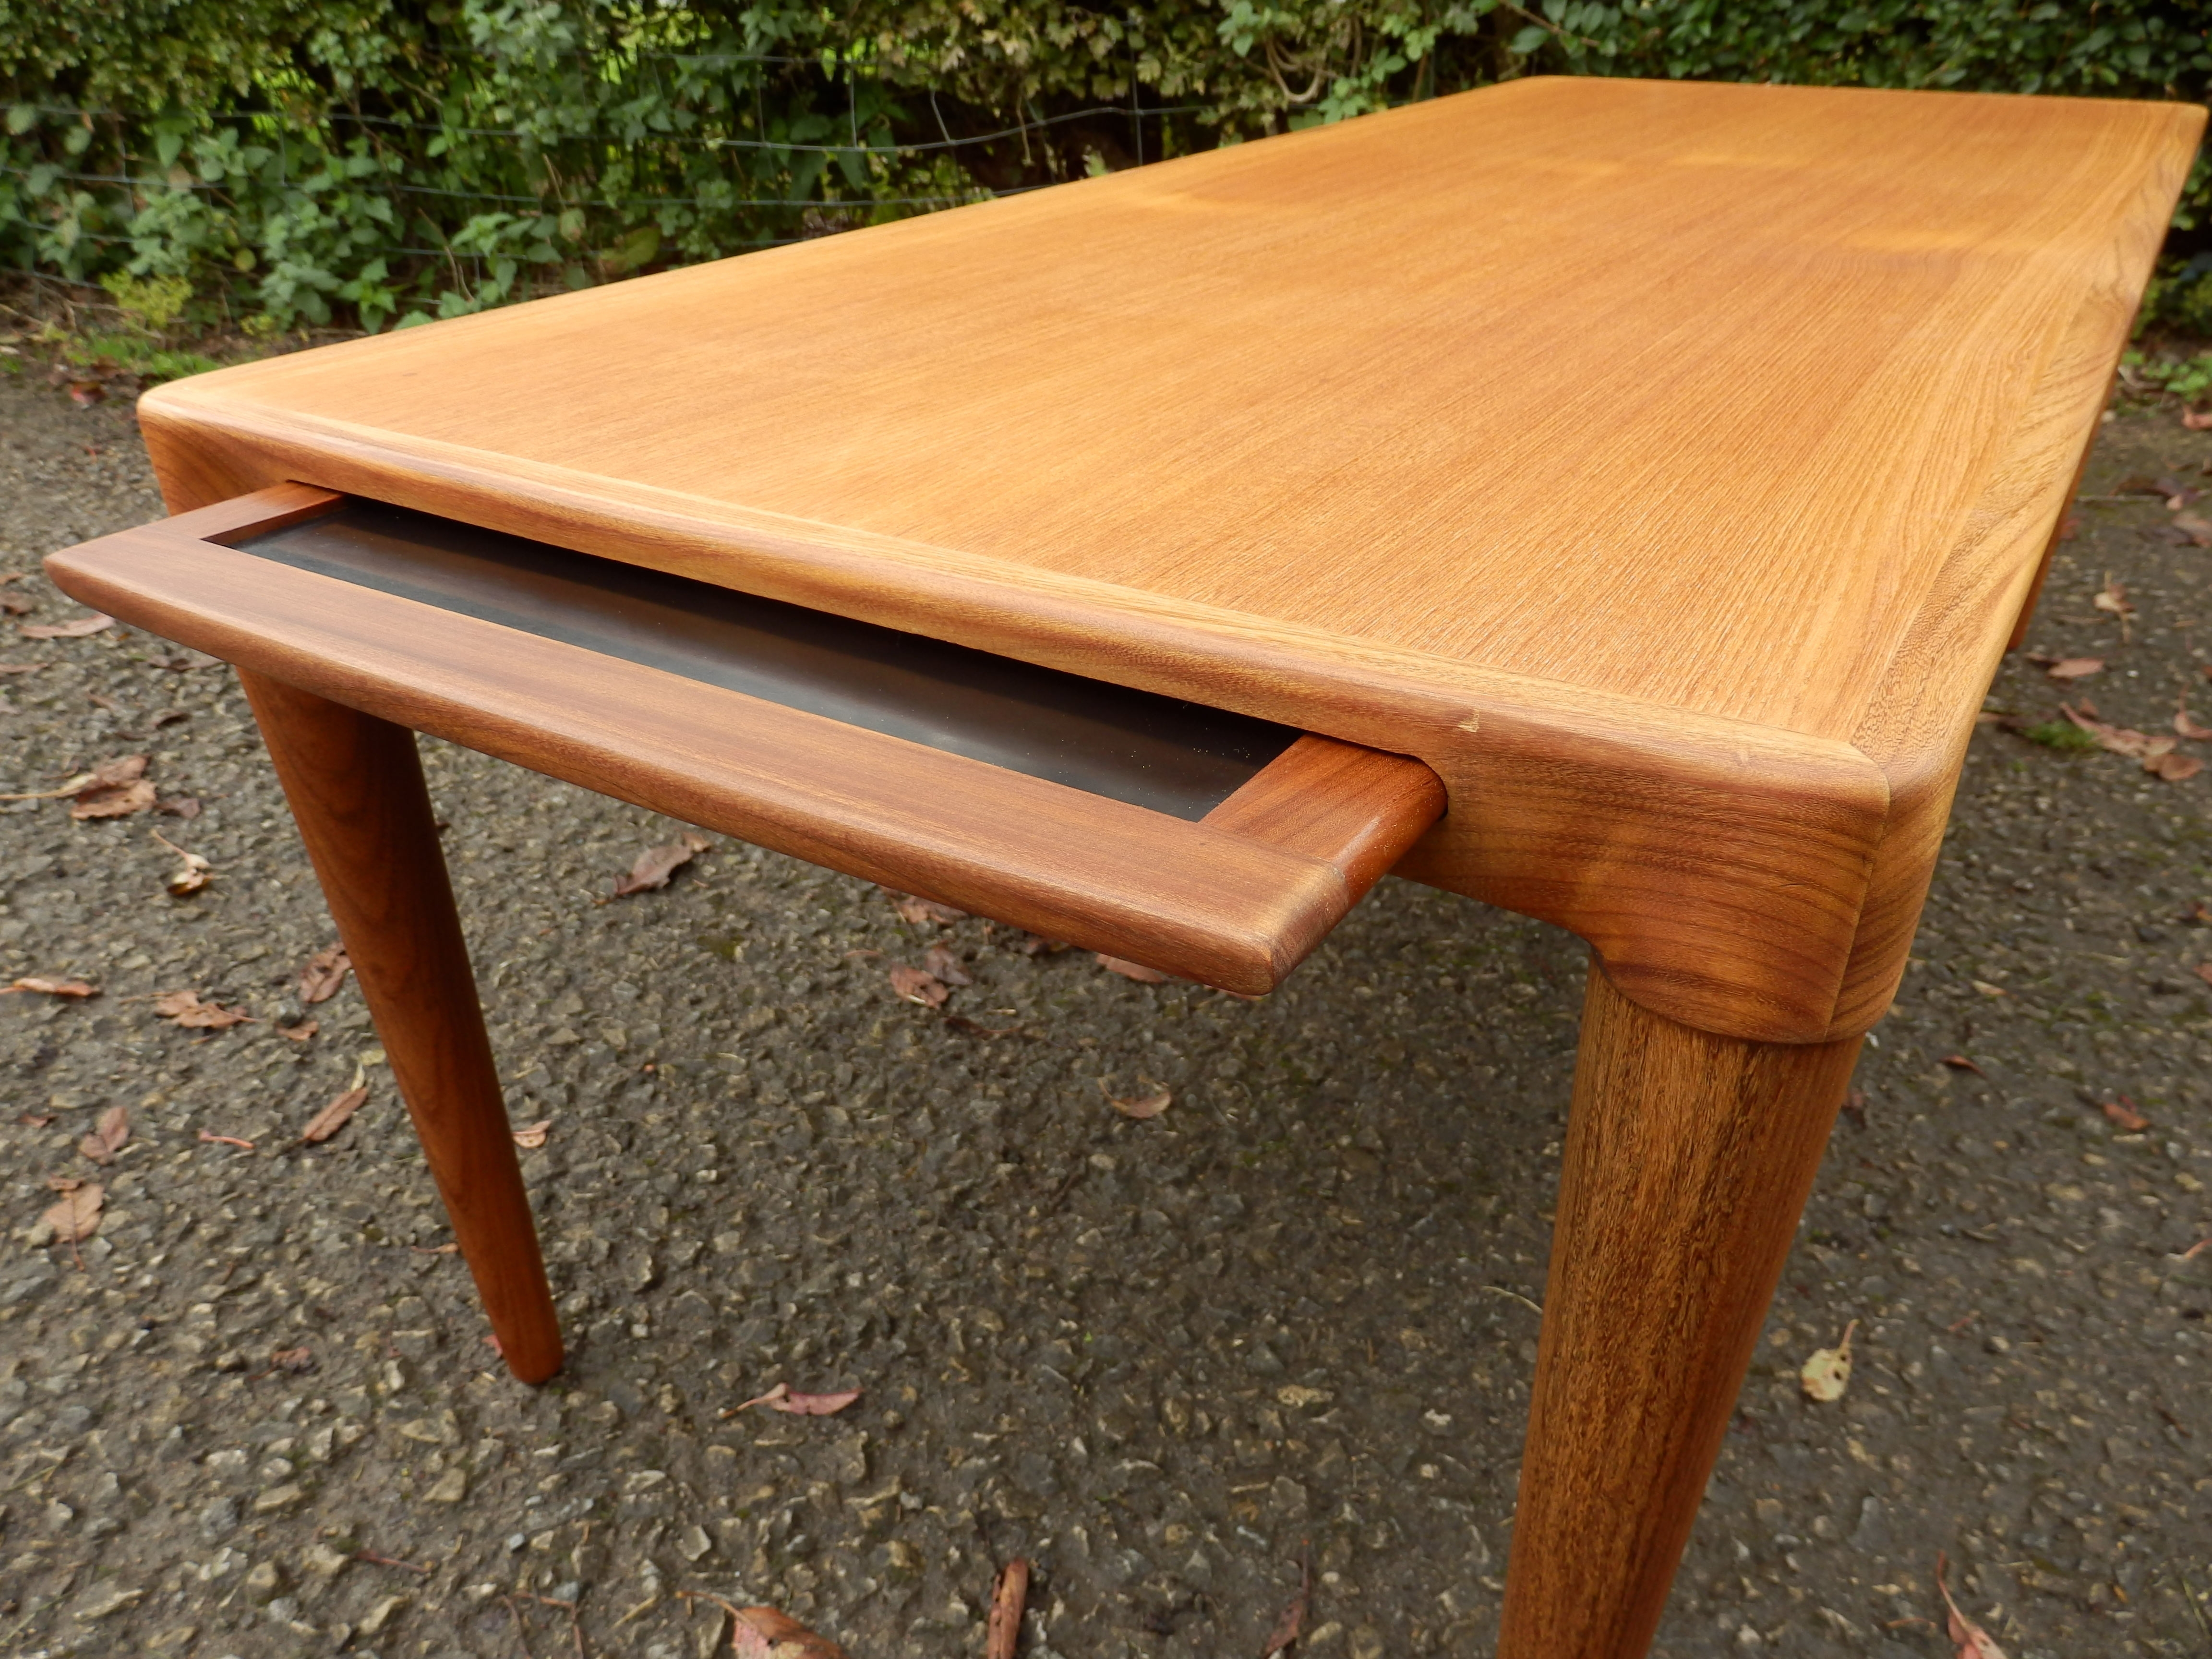 Preferred Large Teak Coffee Tables Inside Very Rare Large Teak Coffee Table With Slide Out Drinks Tray (View 14 of 20)